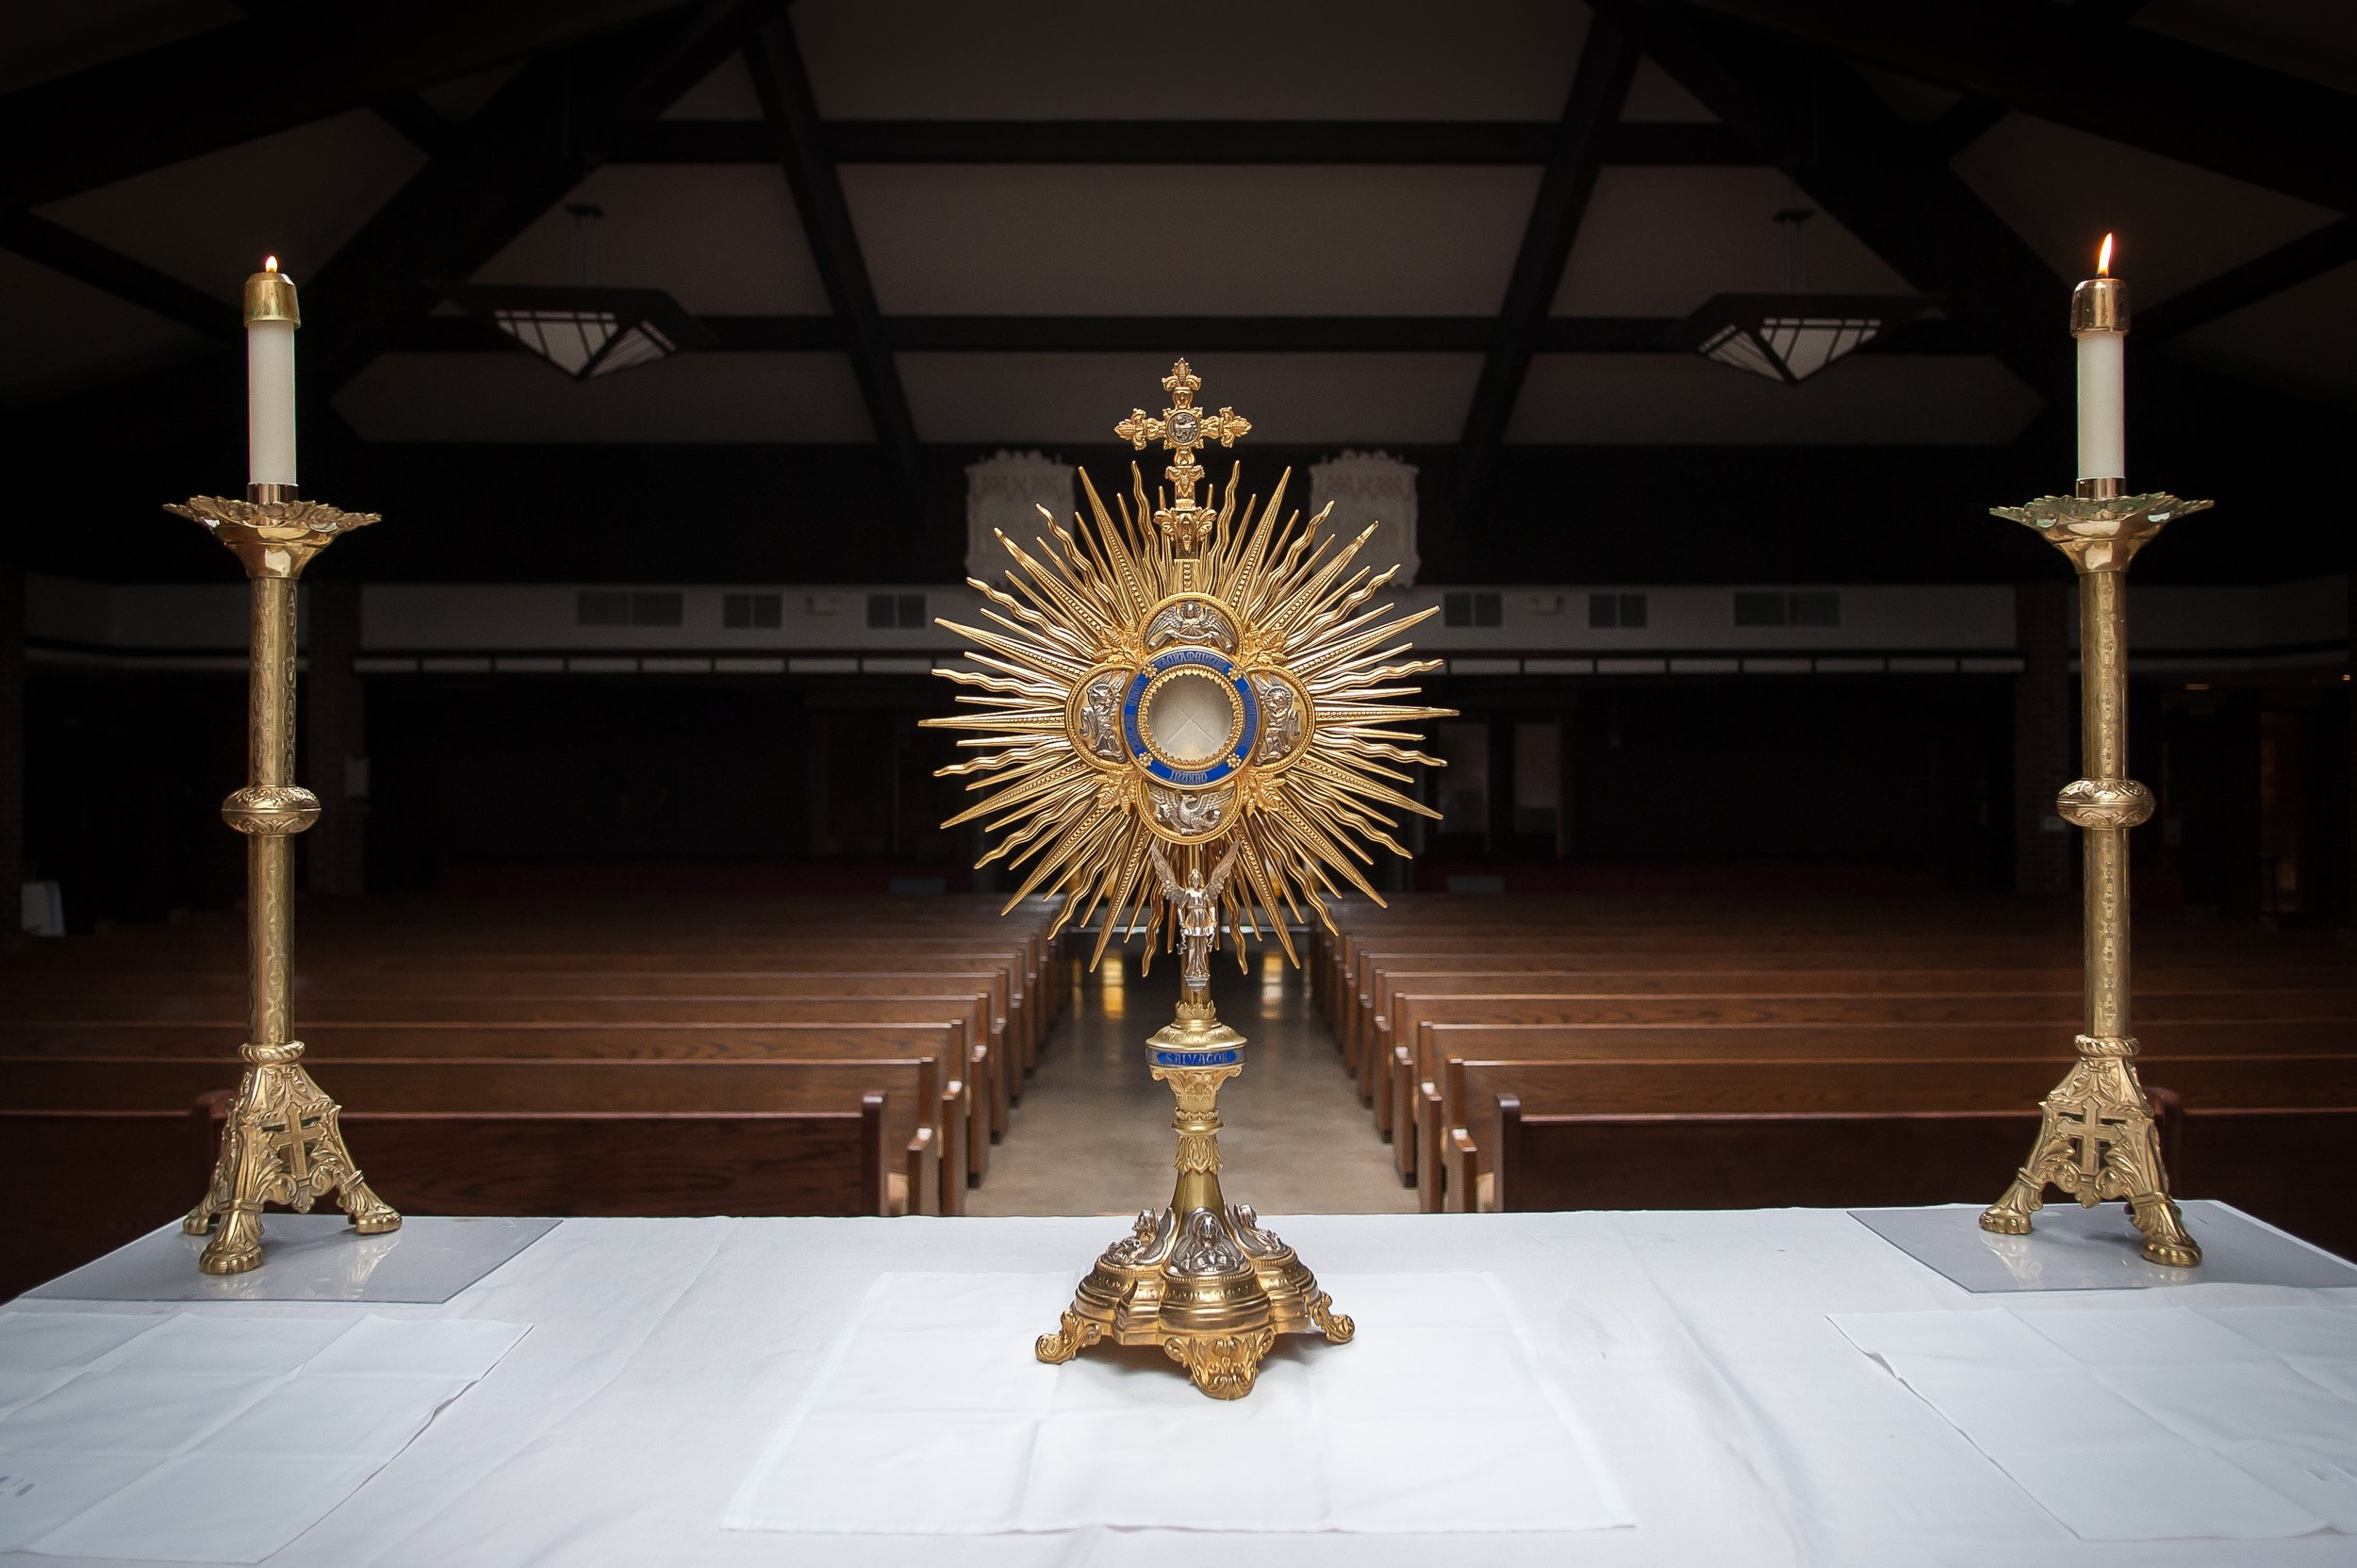 The Monstrance - Eucharistic Adoration